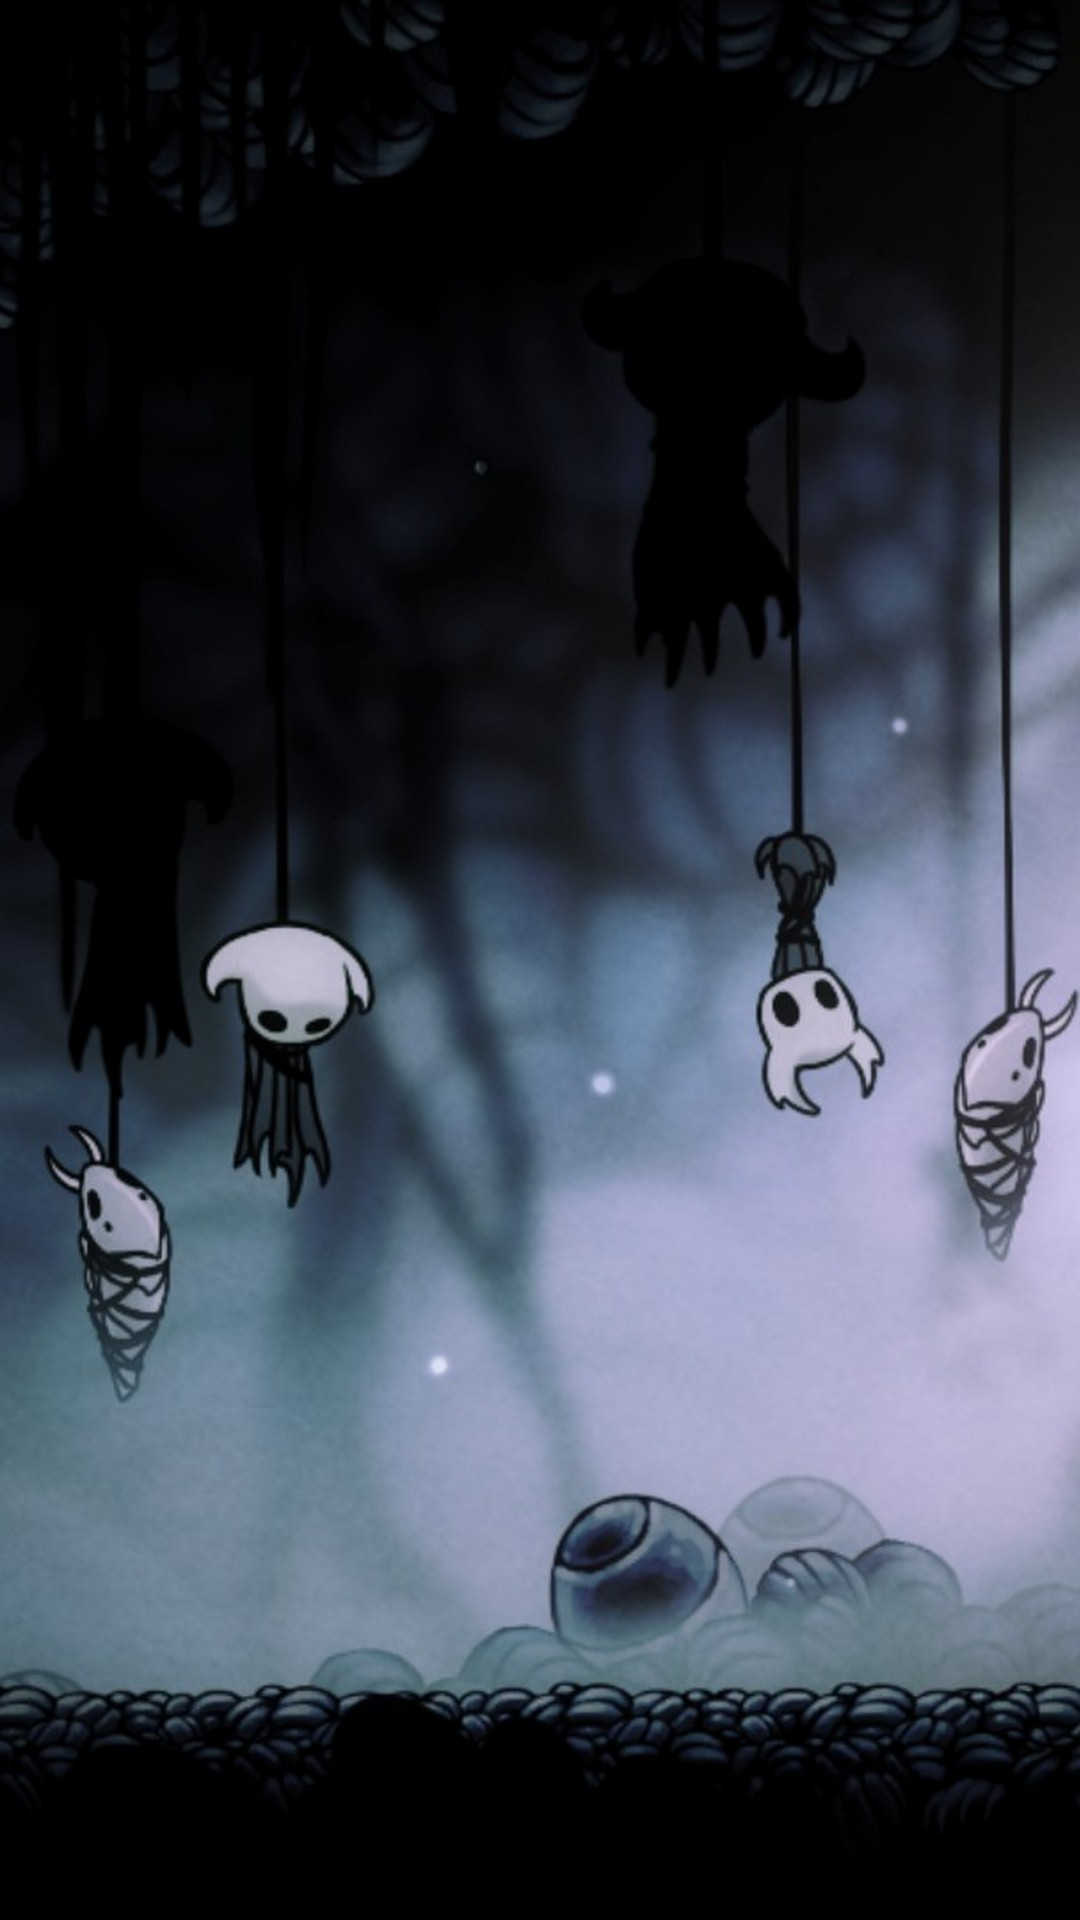 Hollow Knight Wallpaper for Phones 2020 Phone Wallpaper HD 1080x1920